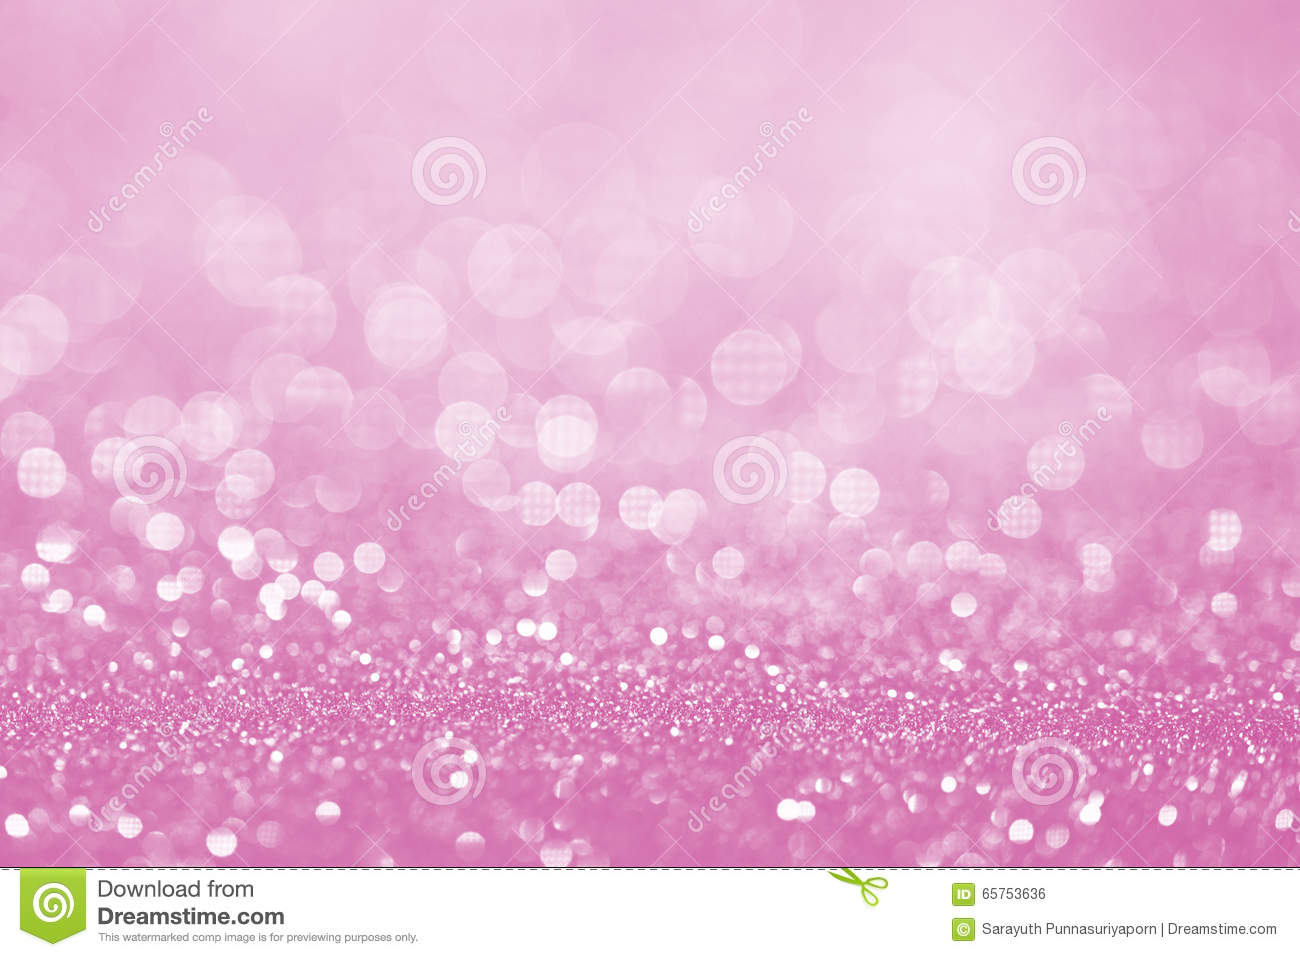 Pink glitter surface with pink light bokeh - It can be used for